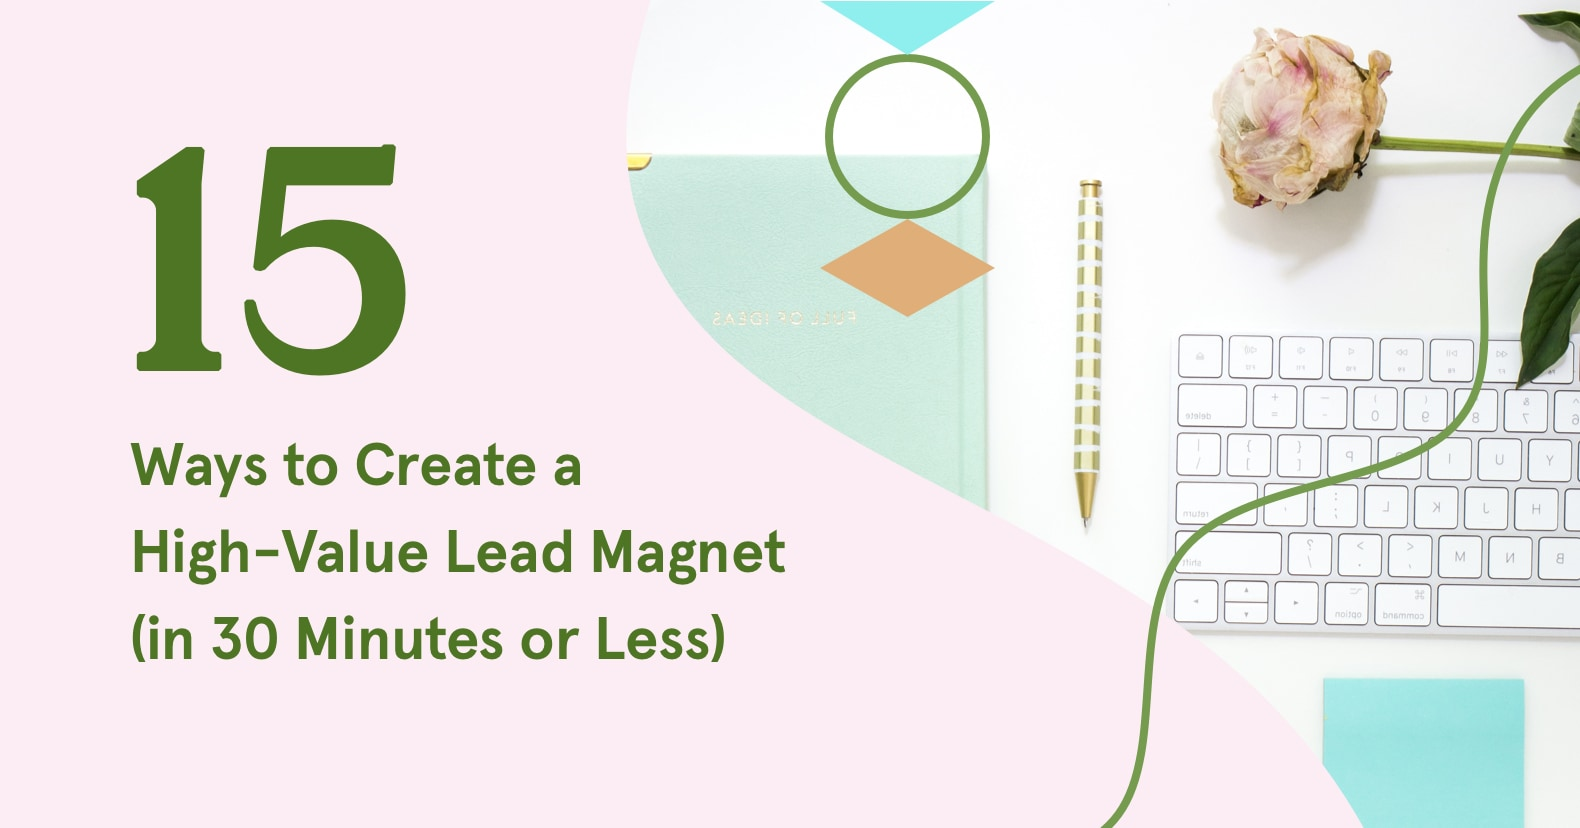 15 Ways to Create a Lead Magnet in 30 Minutes or Less